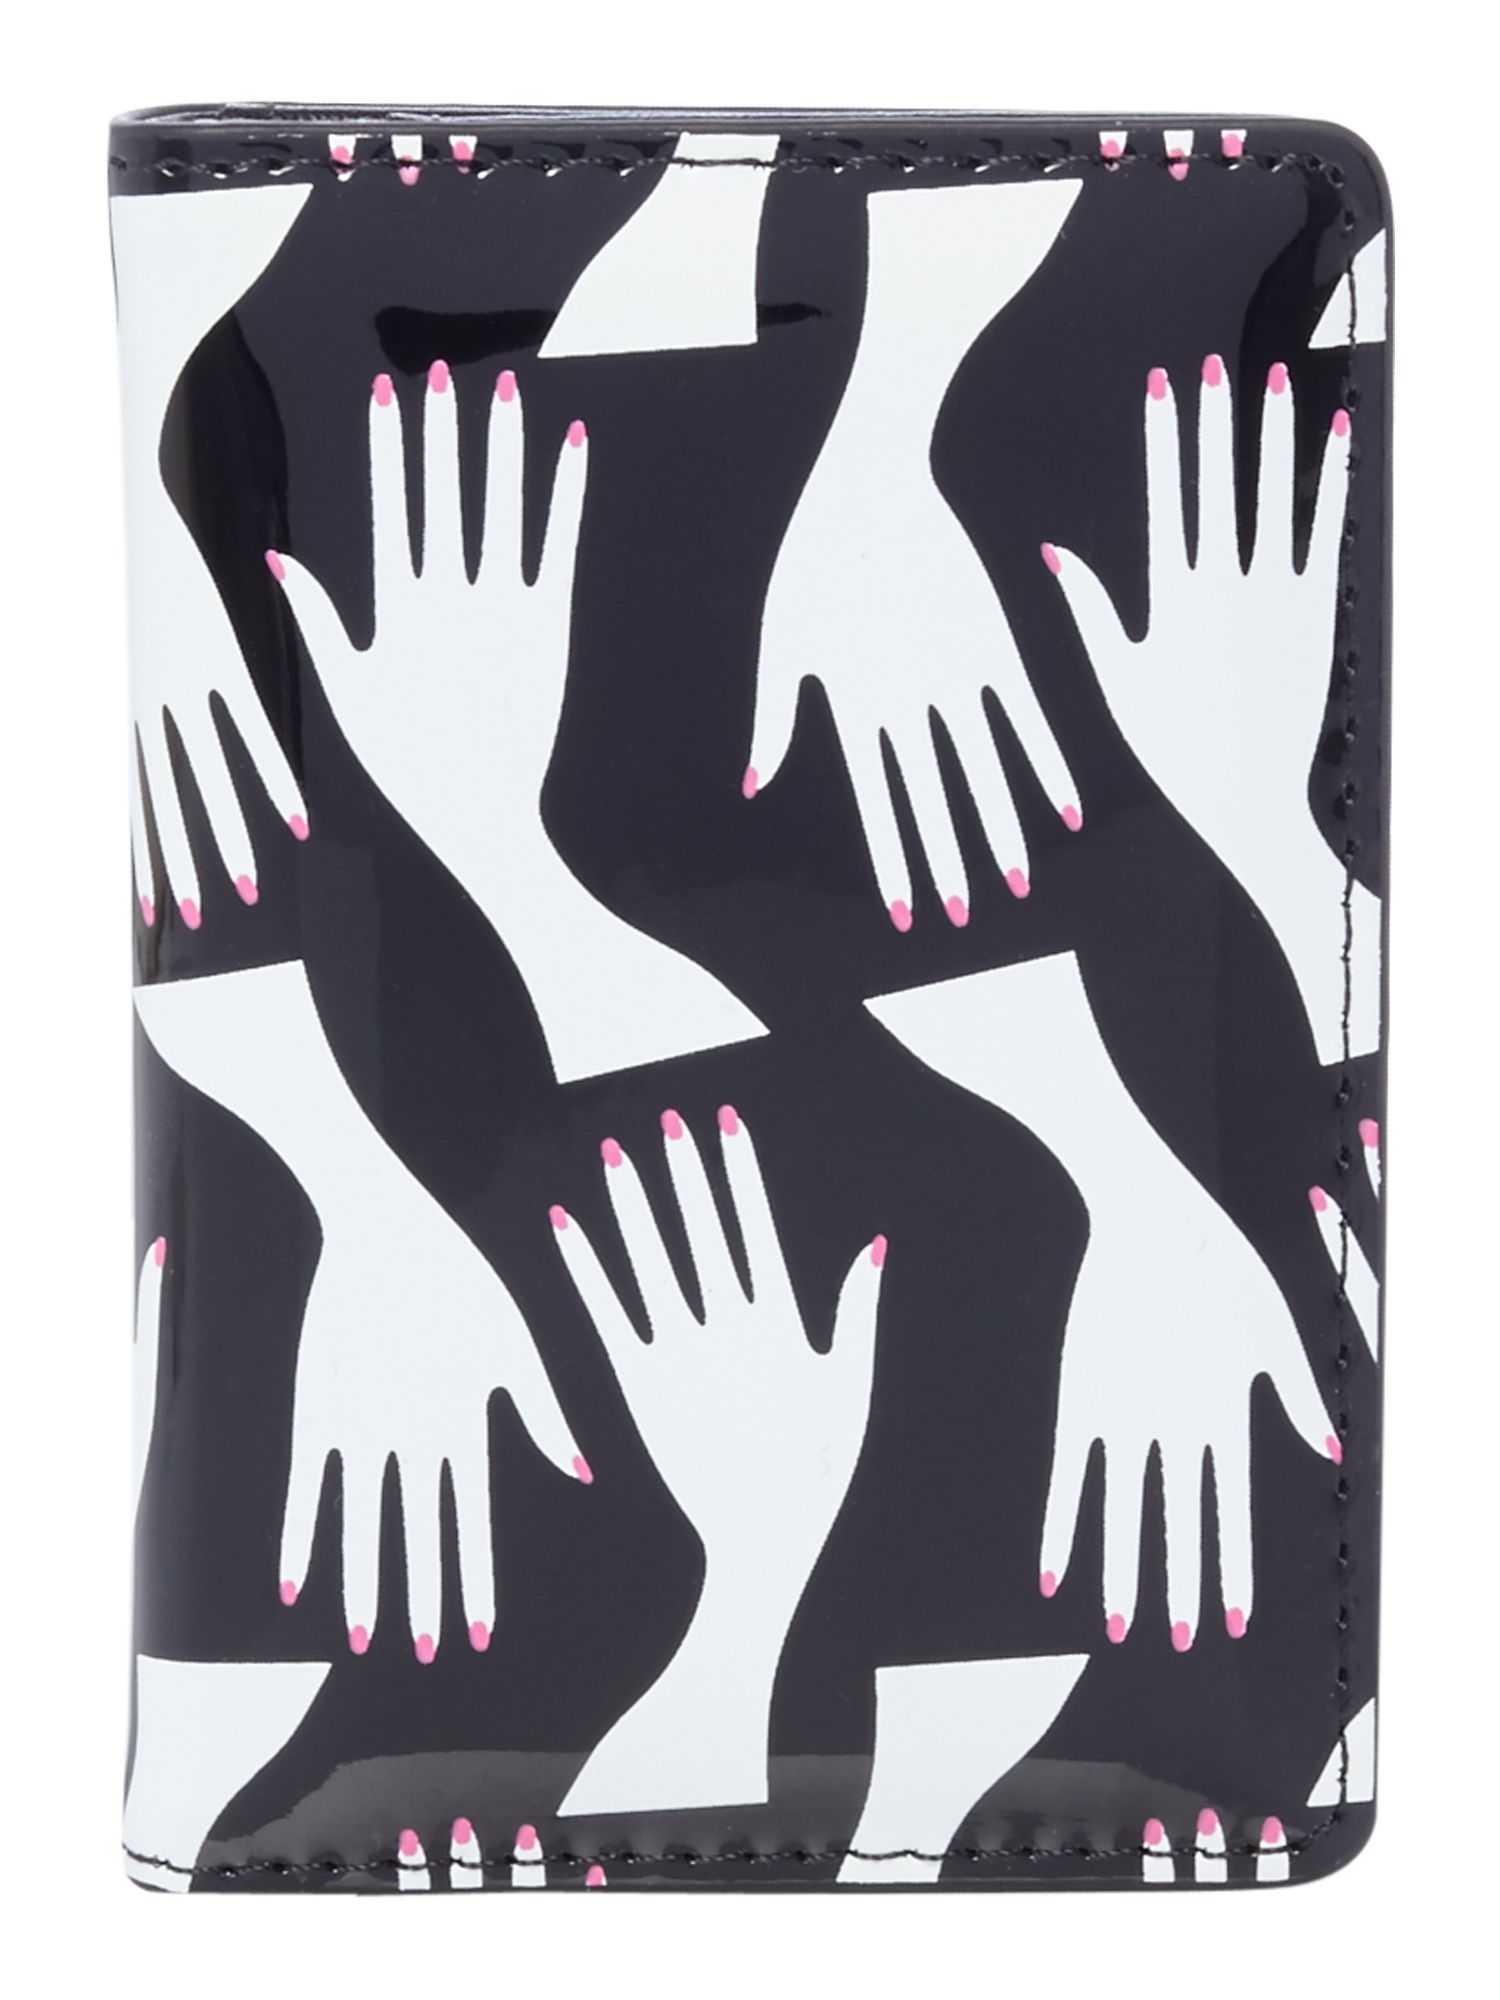 Lulu Guinness Hug print matilda cardholder, Multi-Coloured